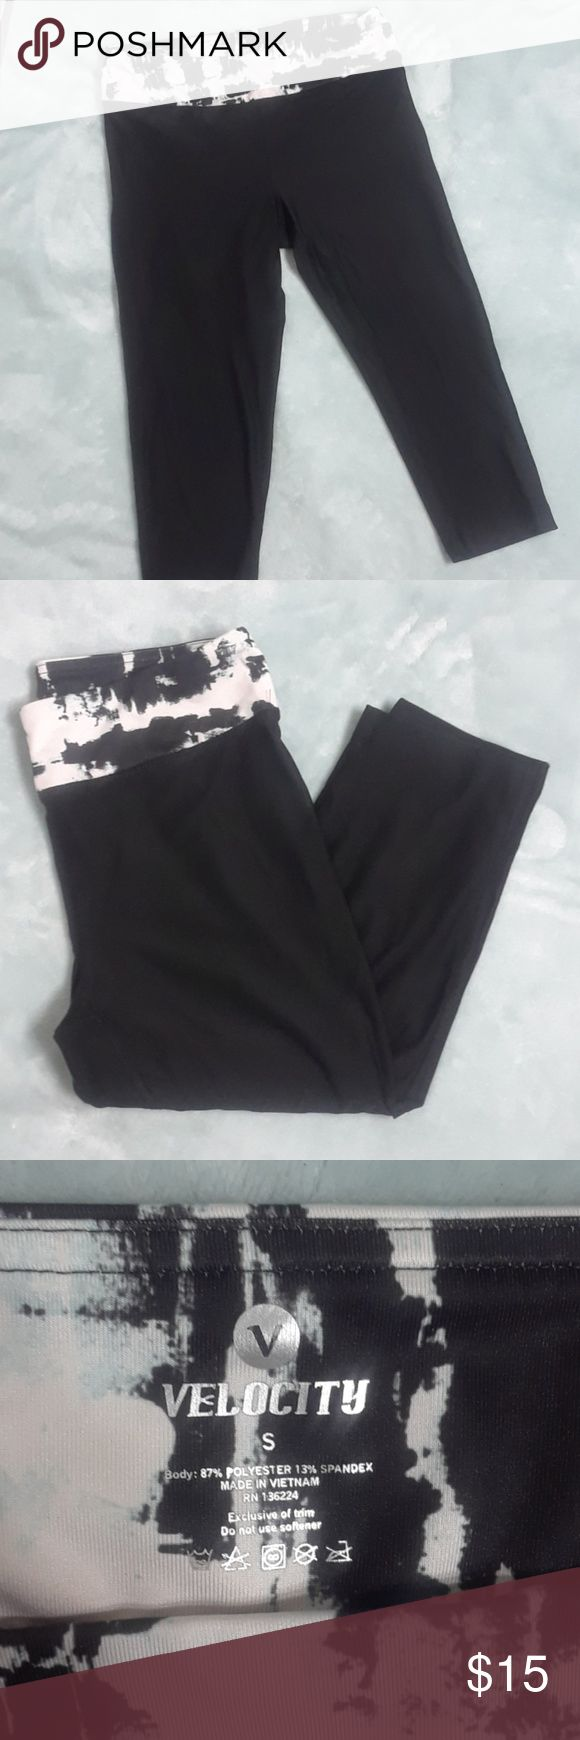 Nwot Velocity Training capris Nwot. Excellent Condition Velocity Work out capris. Comfortable material. Cute print along the waistline. Size small. Velocity Pants Capris